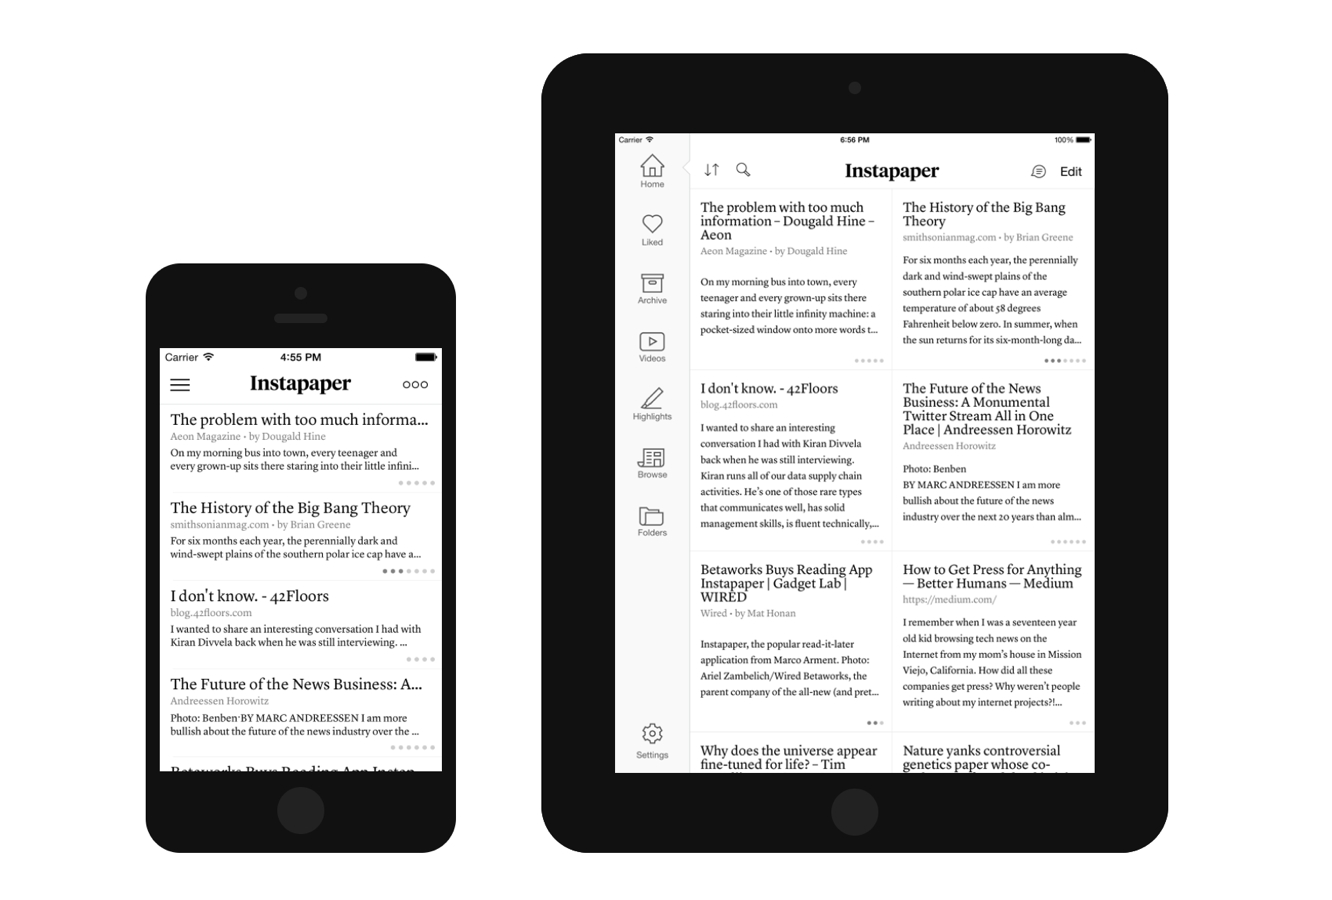 Instapaper parts ways with Pinterest to go it on its own 1